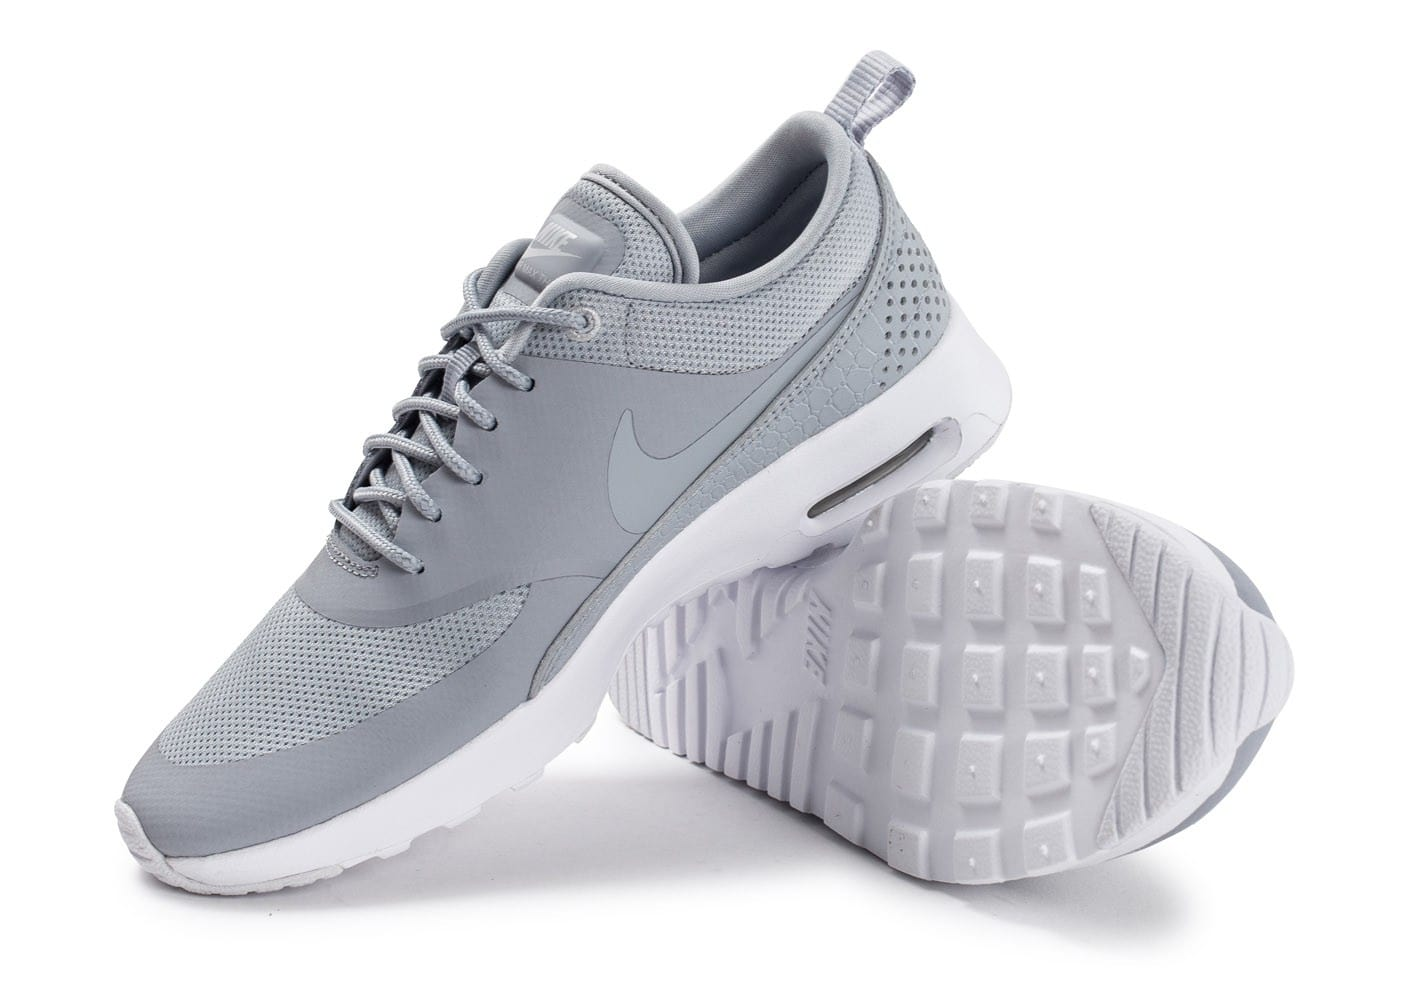 sports shoes 25252 2f2c5 ... Chaussures Nike Air Max Thea W grise vue avant ...